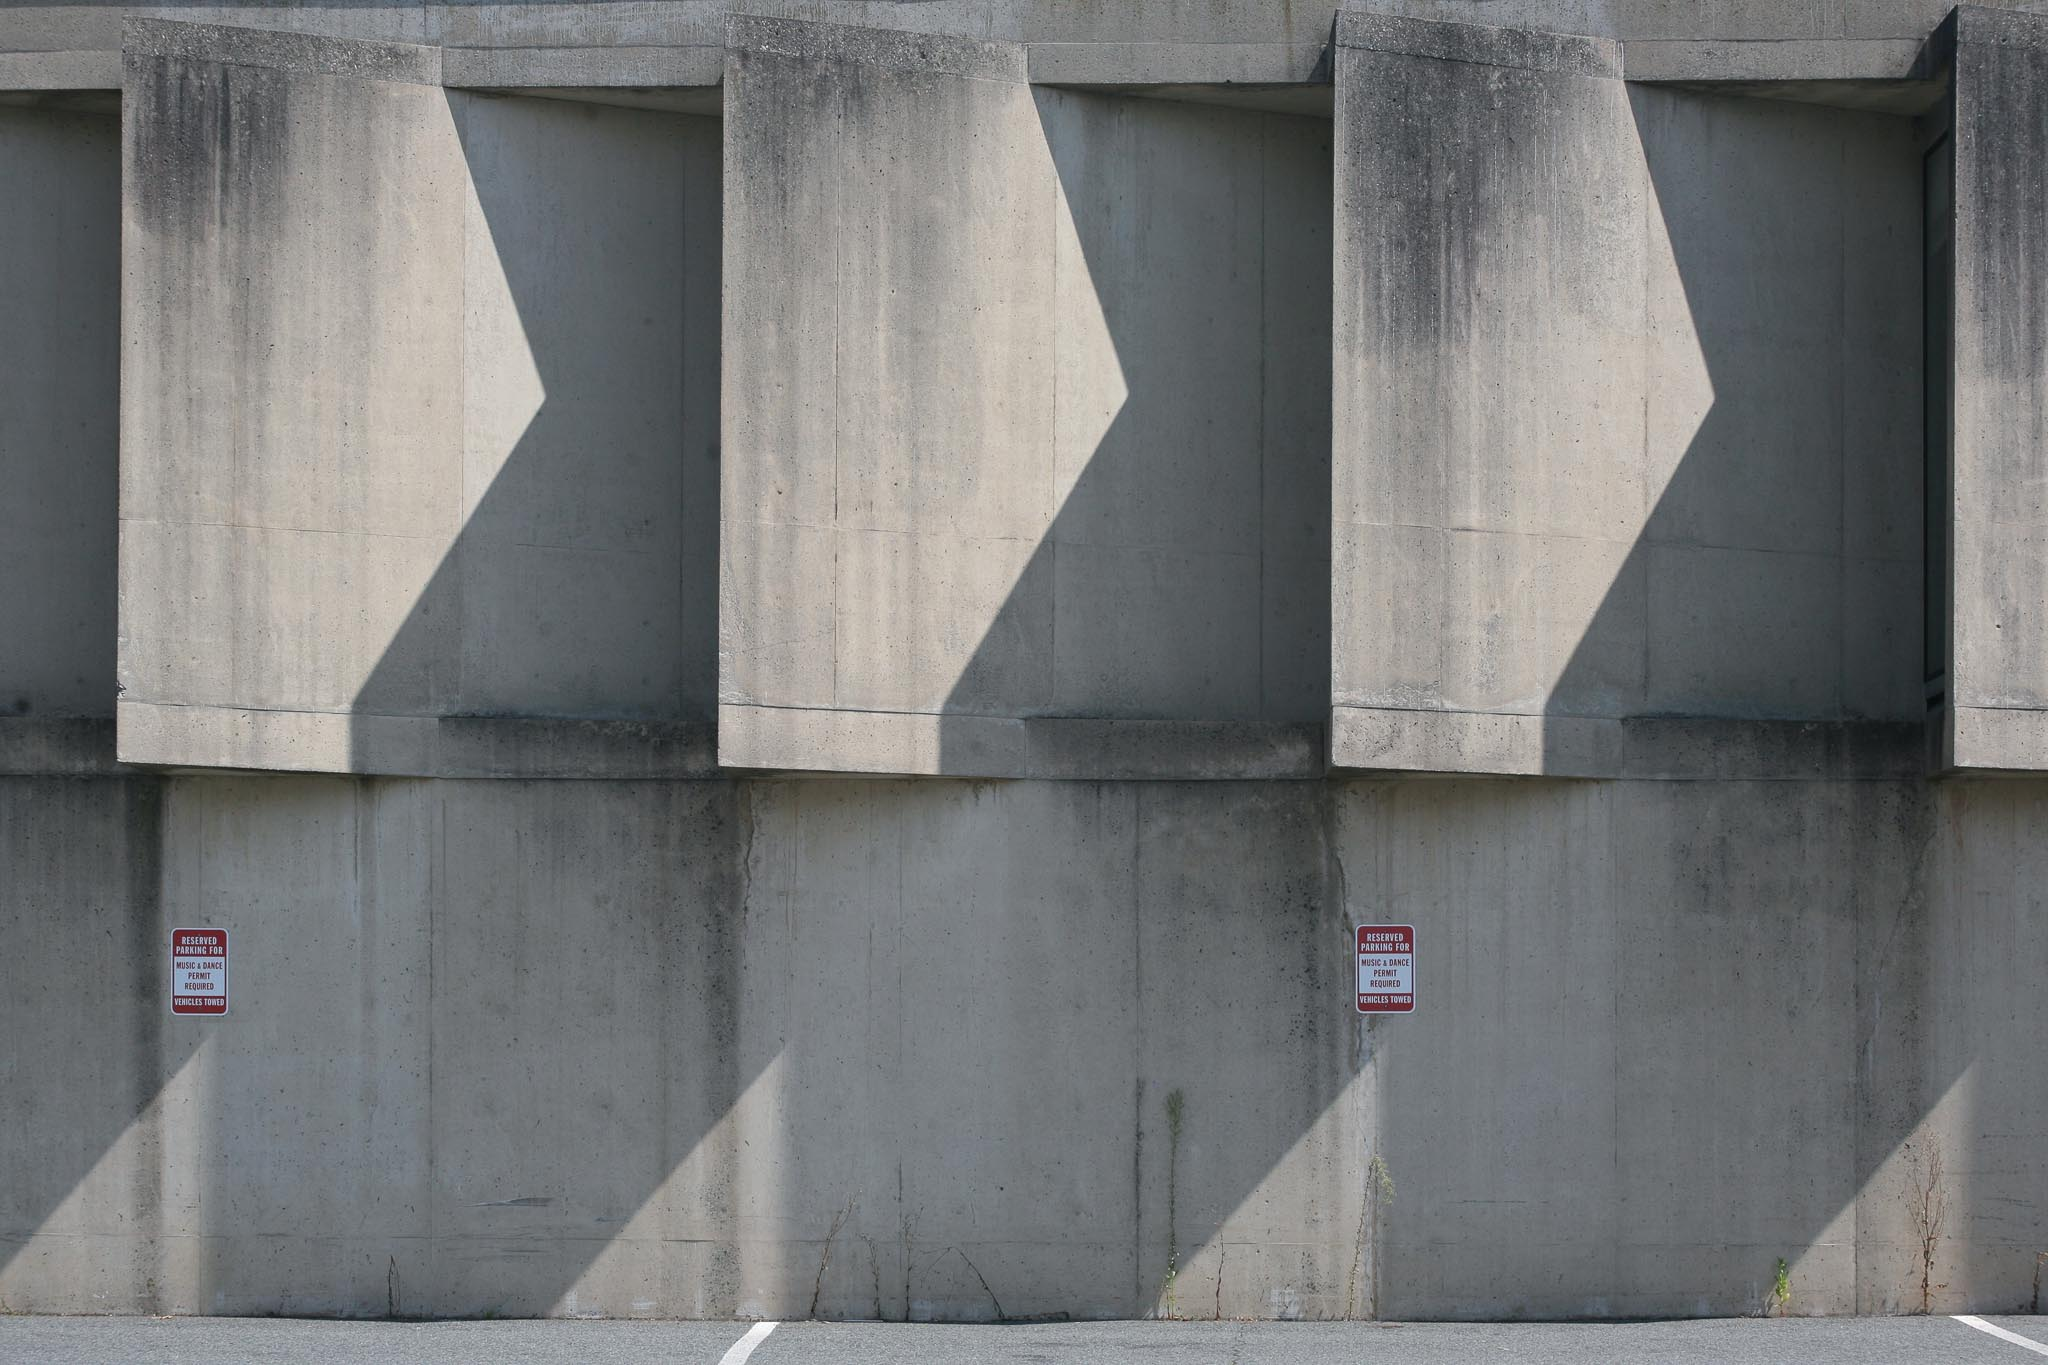 Beauty in the Beast - Photography of Brutalist Architecture; UMASS Amherst (Rhythm II)